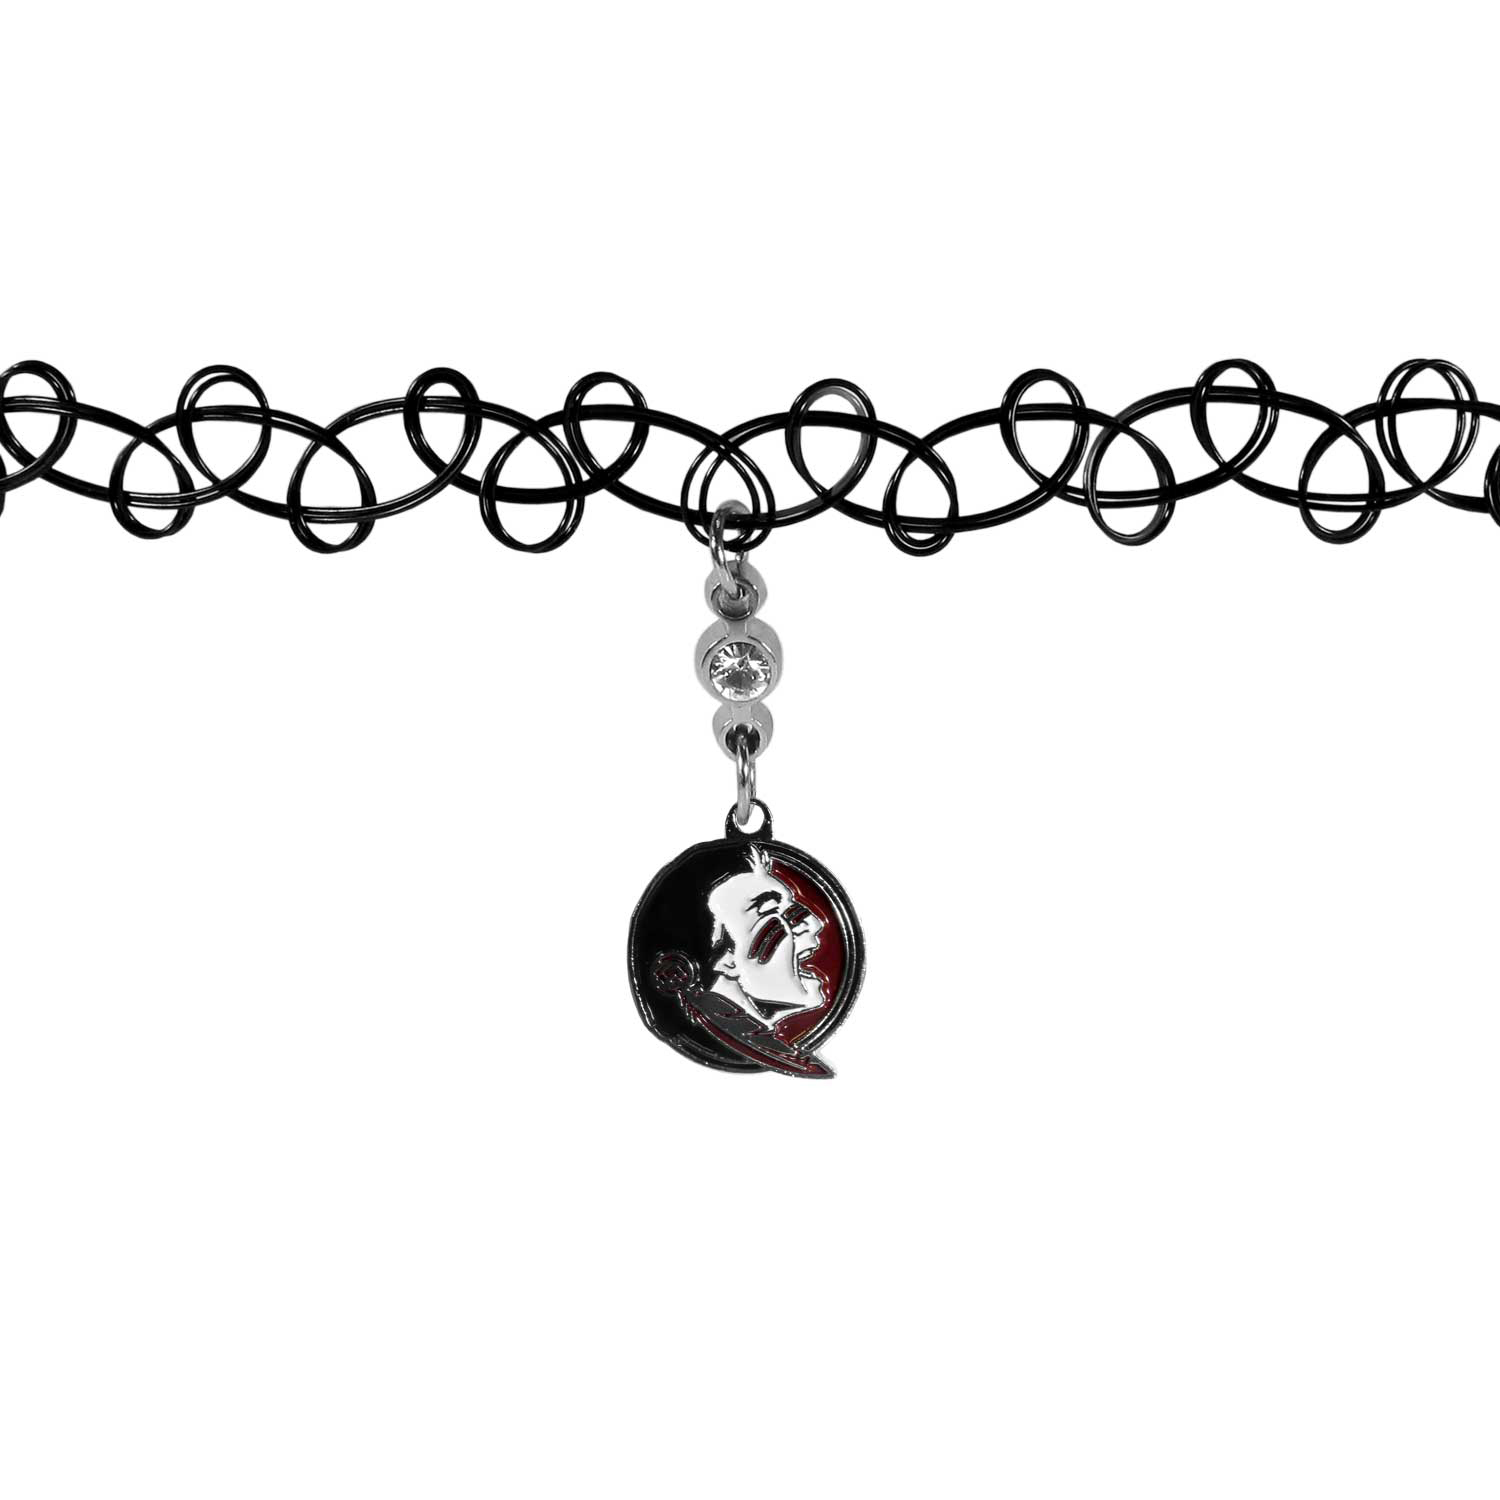 Florida St. Seminoles Knotted Choker - This retro, knotted choker is a cool and unique piece of fan jewelry. The tattoo style choker features a high polish Florida St. Seminoles charm with rhinestone accents.